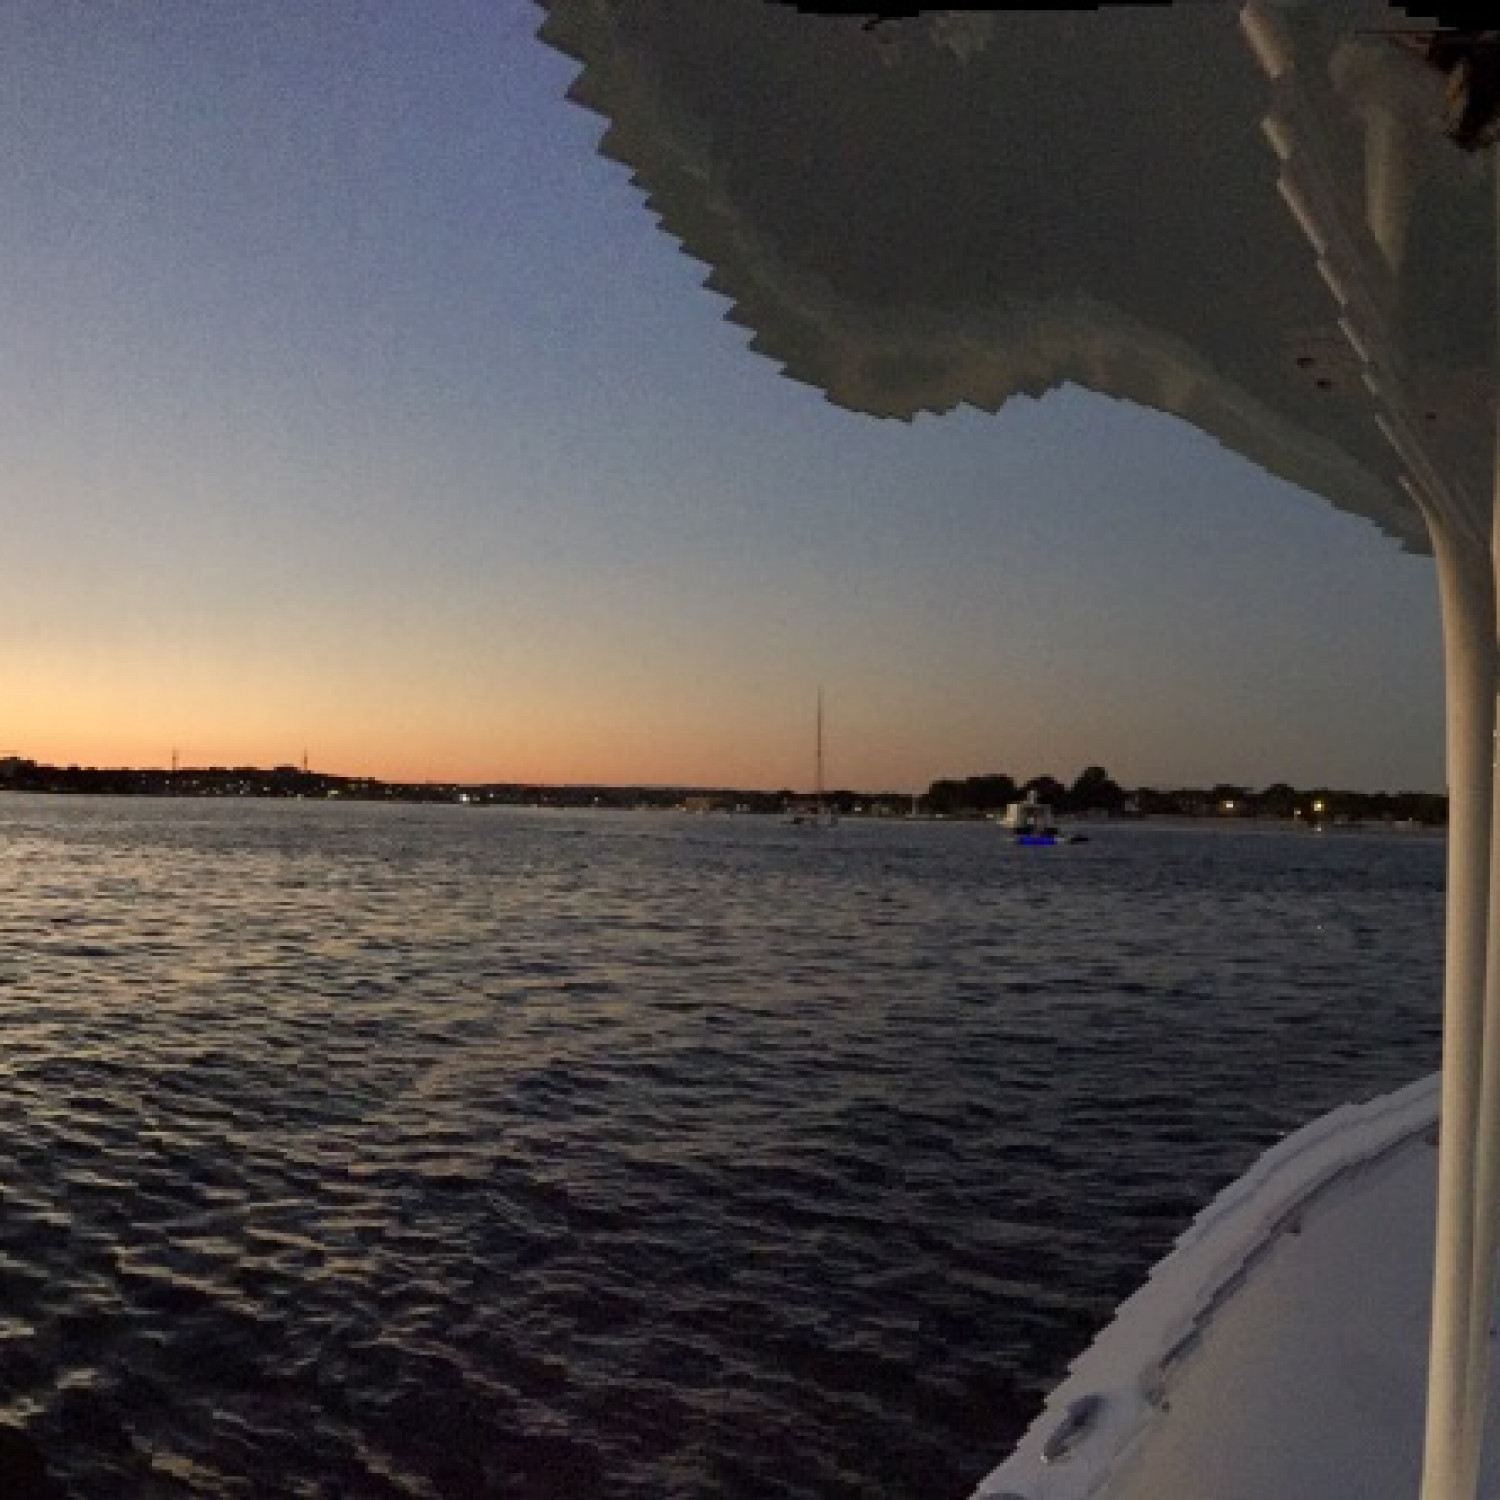 Title: Sunset PANO - On board their Sportsman Open 252 Center Console - Location: NY. Participating in the Photo Contest #SportsmanMay2018